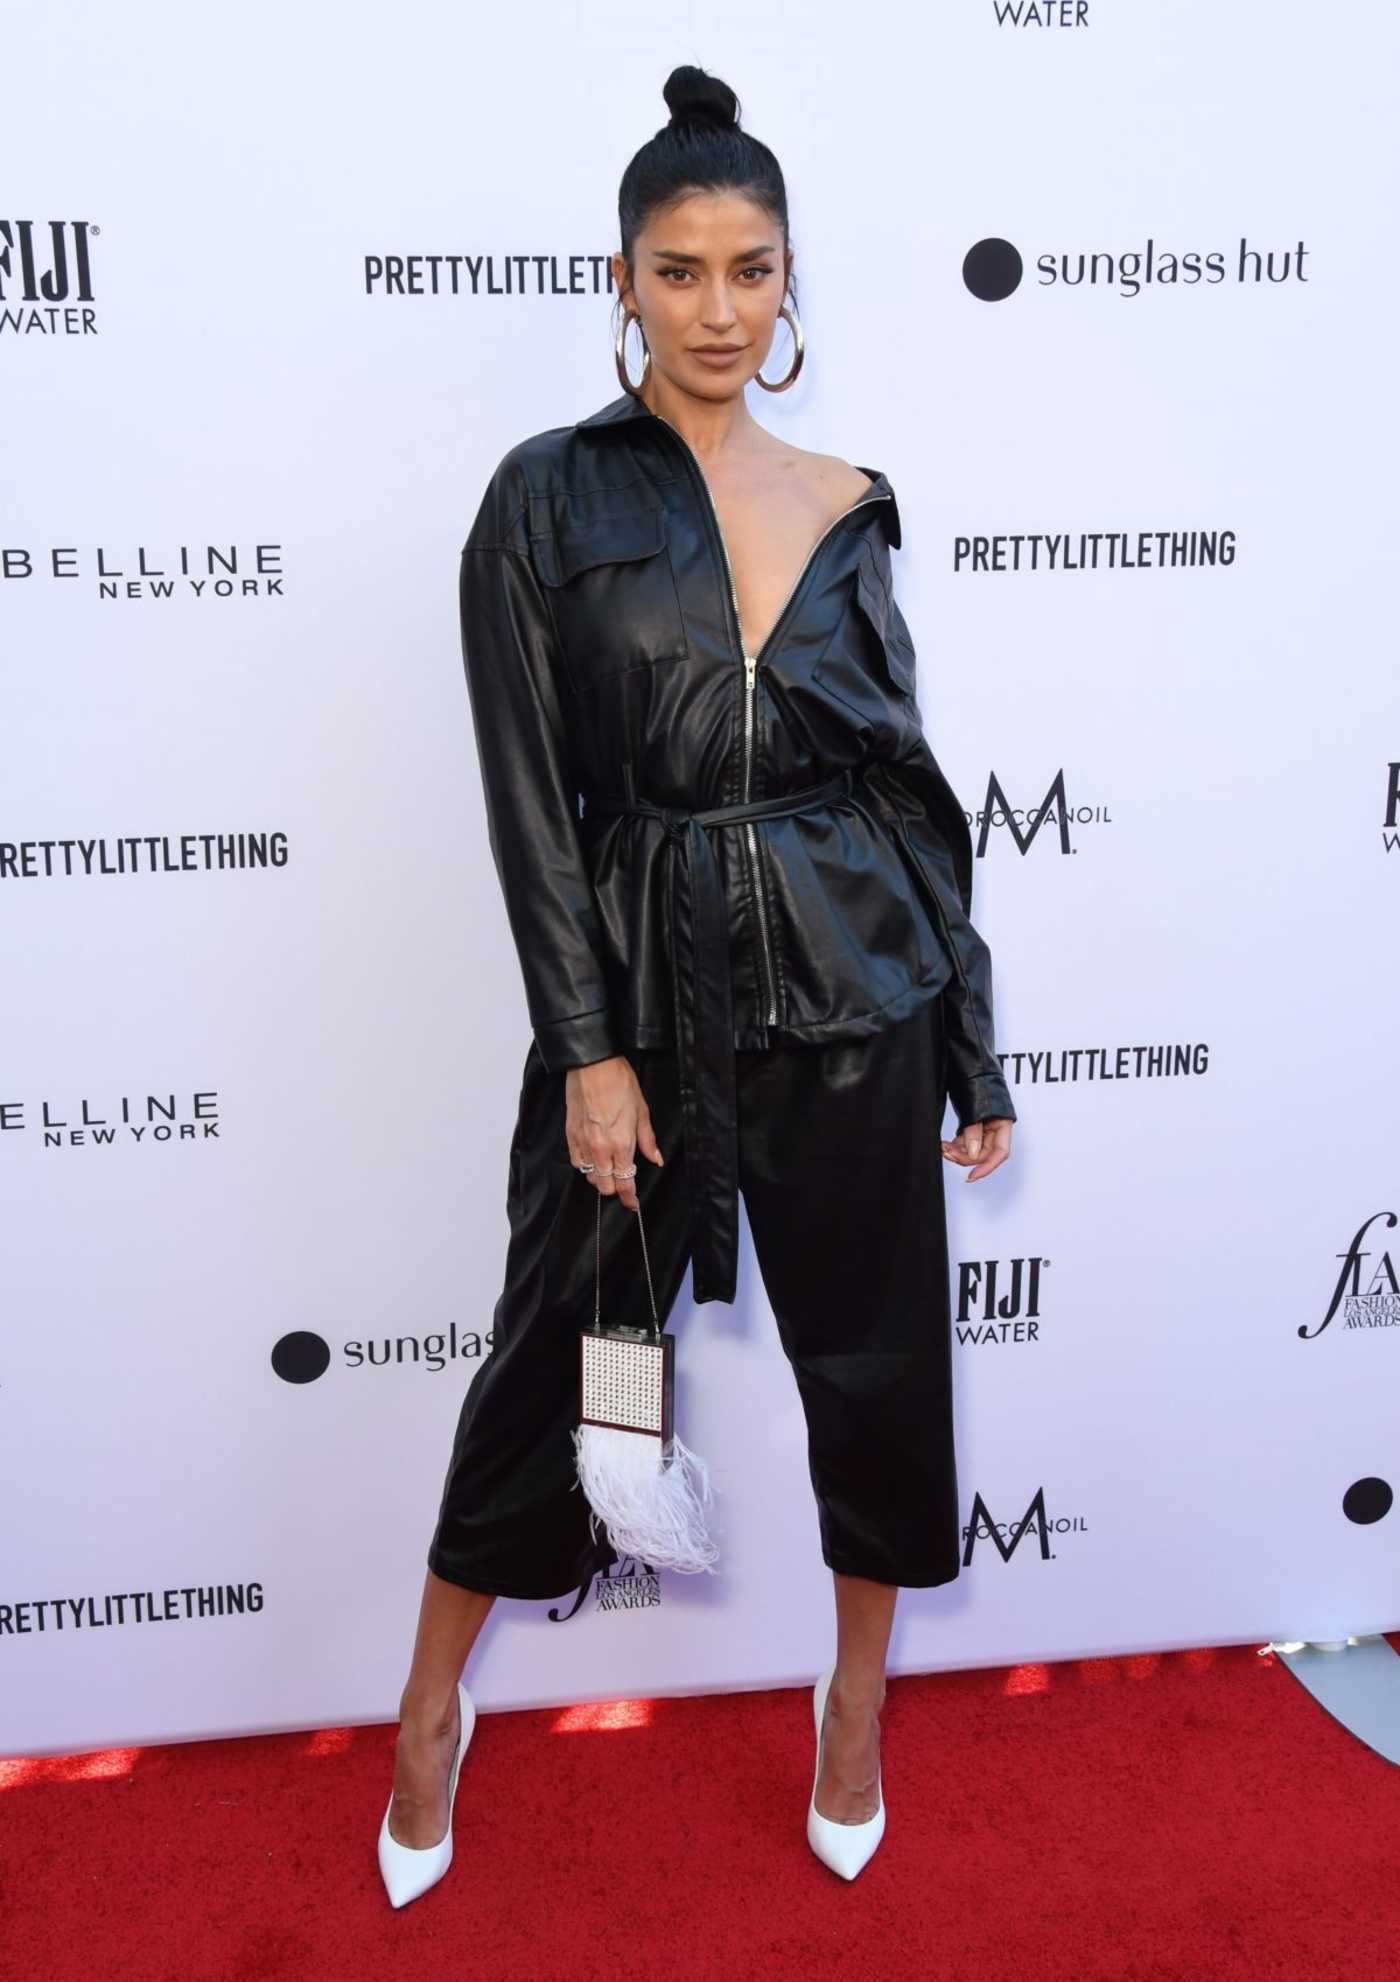 Nicole Williams Attends The Daily Front Row Fashion Awards at The Beverly Hills Hotel in Los Angeles 03/17/2019